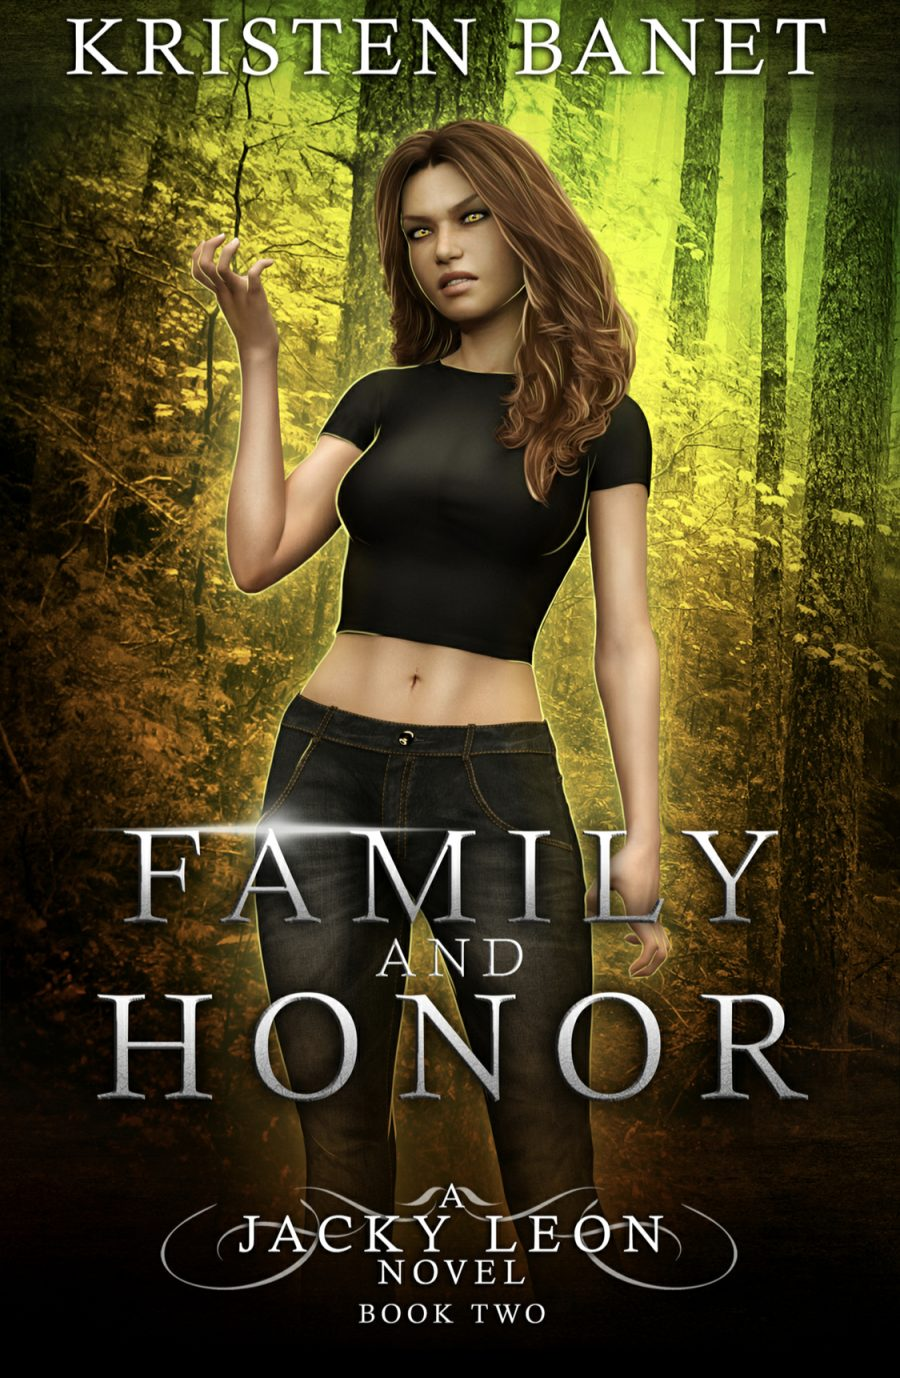 Family and Honor by Kristen Banet - A Book Review #BookReview #UF #UrbanFantasy #Book2 #JackyLeon #Shifters #WouldRecommend #5Stars #KindleUnlimited #KU